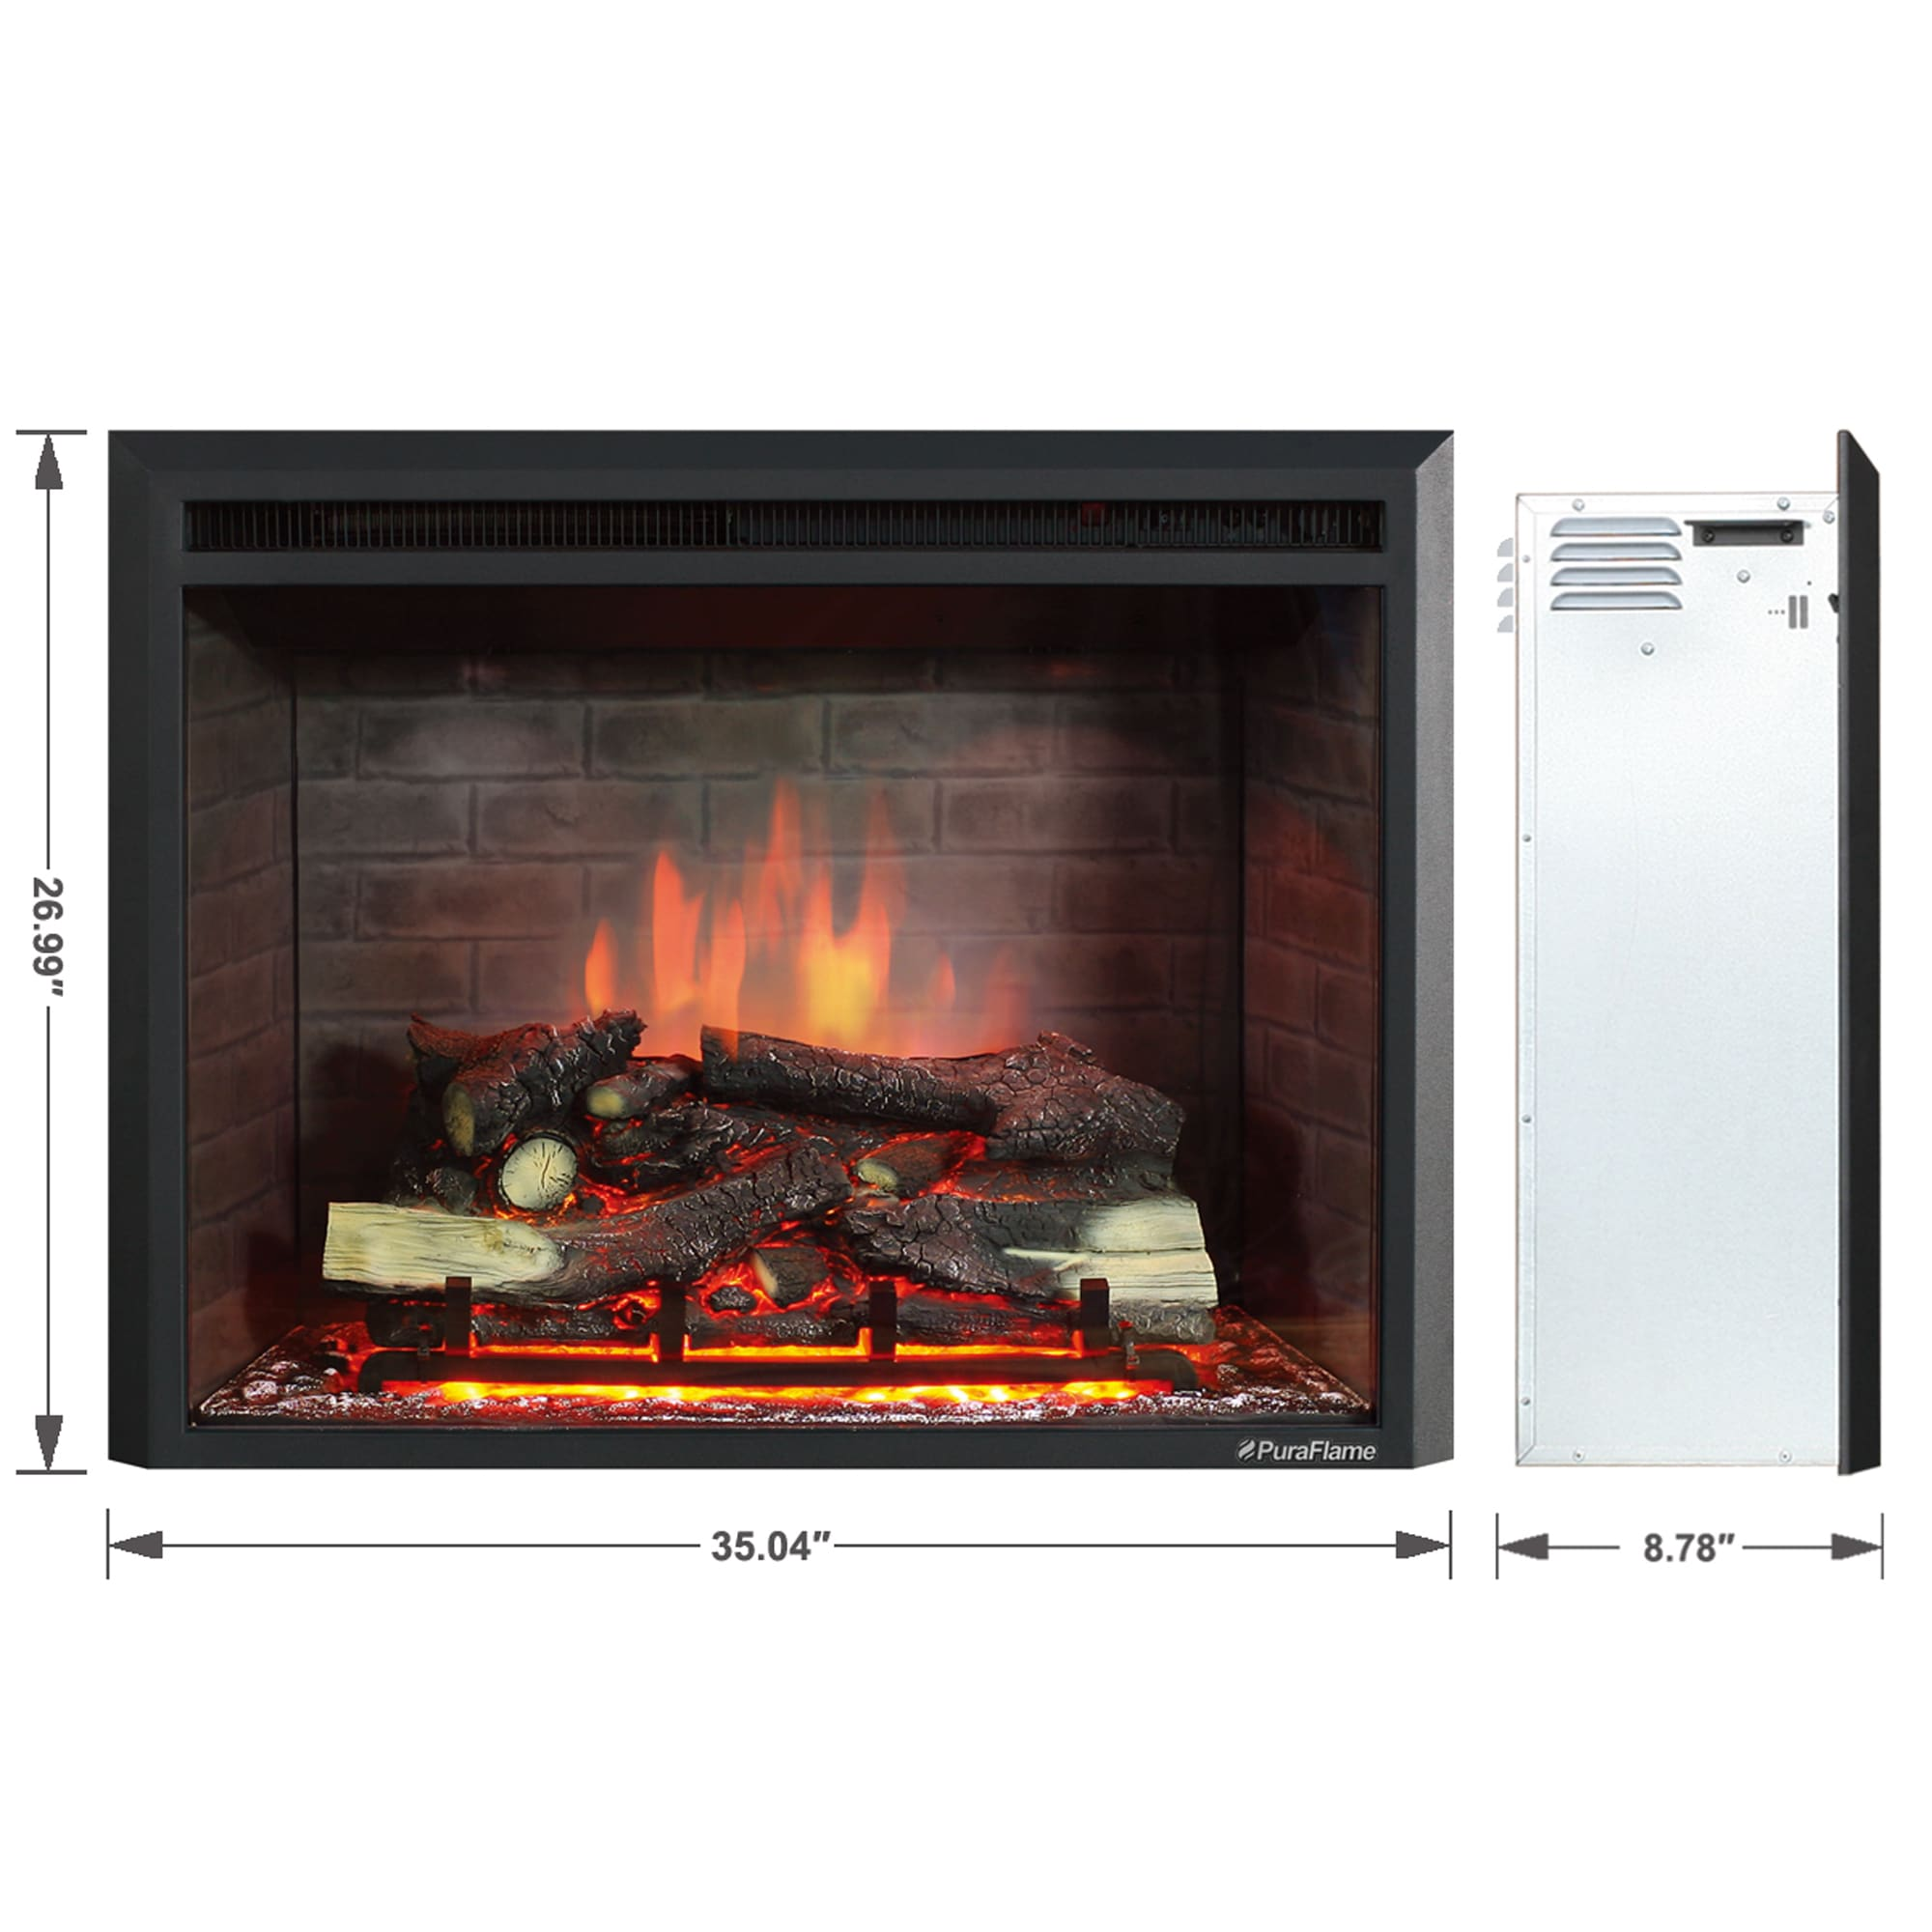 Shop Puraflame 33 Inch Western Electric Fireplace Insert With Remote